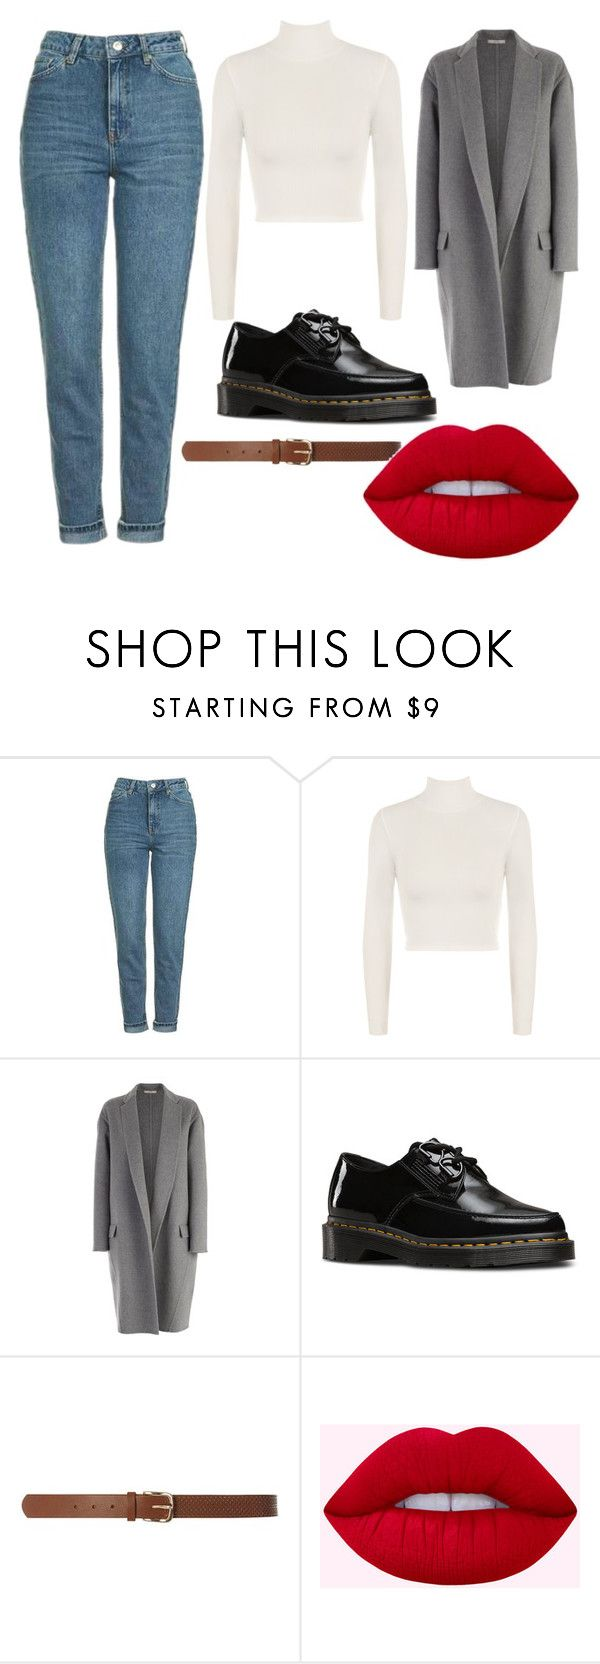 """Noora Skam"" by eleanorhooper ❤ liked on Polyvore featuring Topshop, WearAll, CÉLINE, Dr. Martens, Dorothy Perkins, noora and skam"